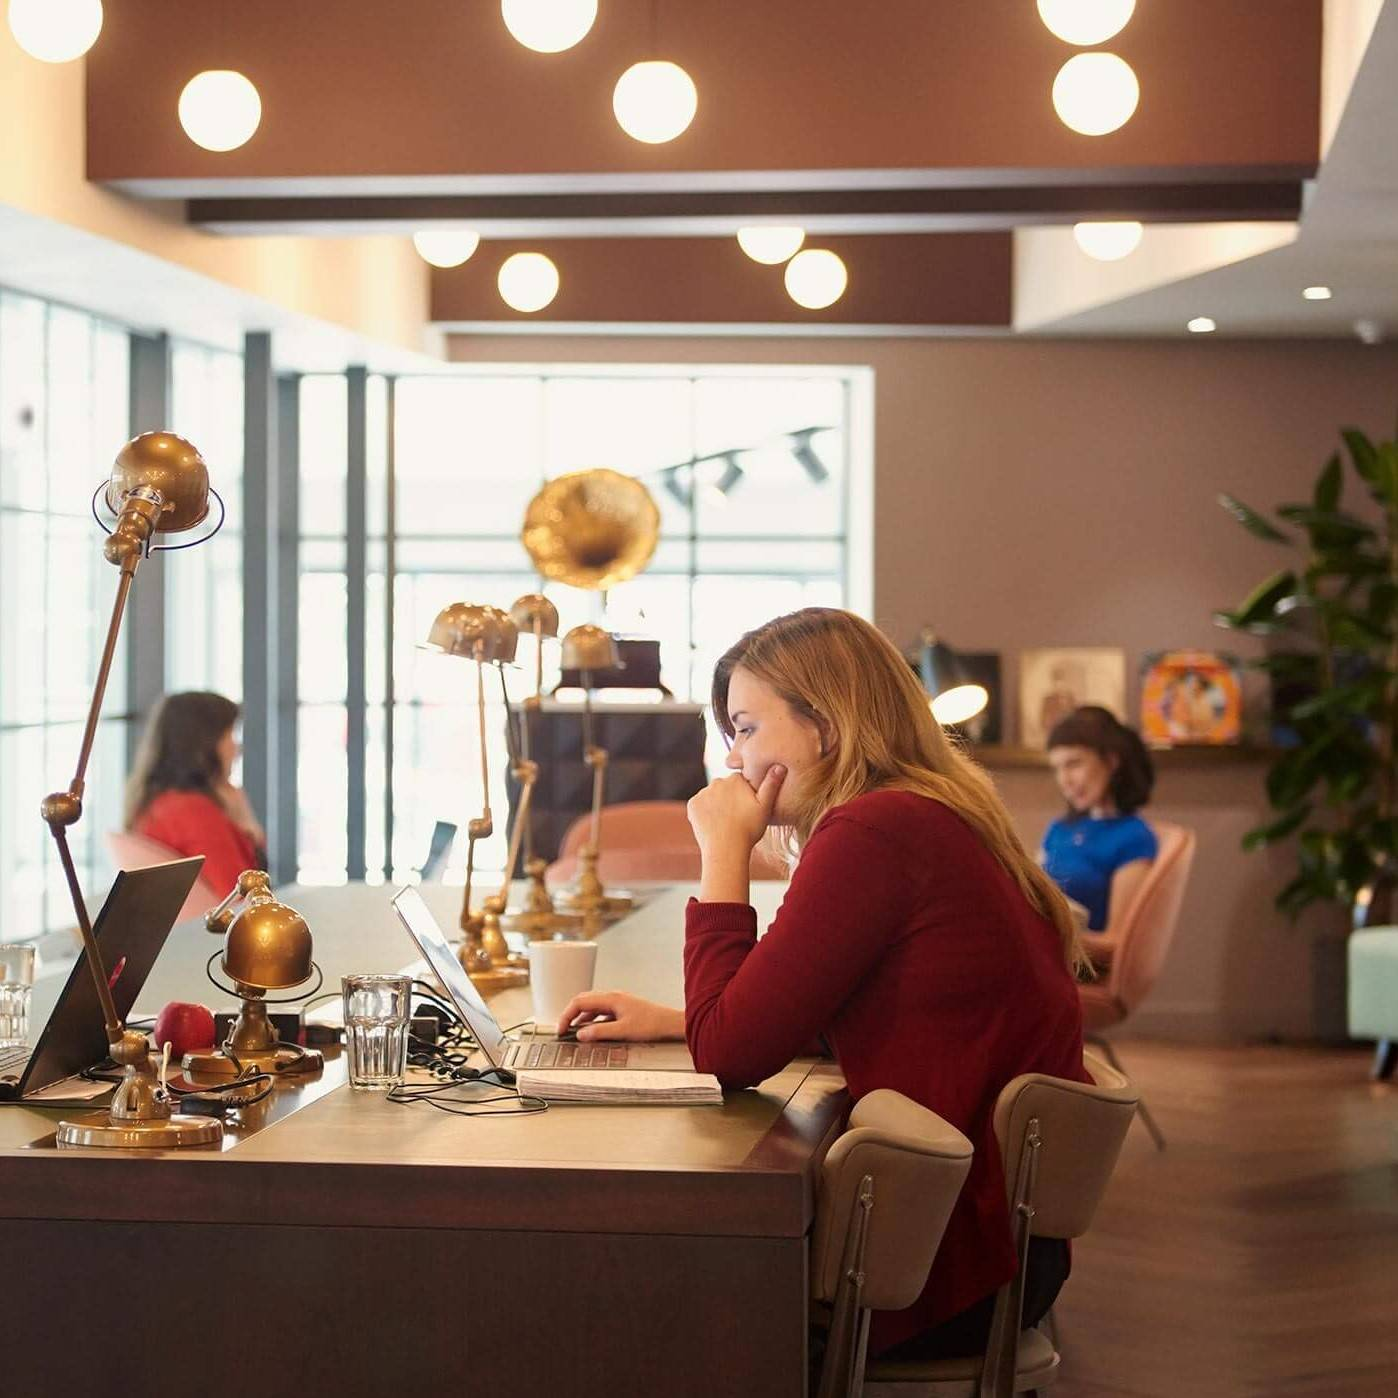 People who work in coworking spaces believe they are more productive